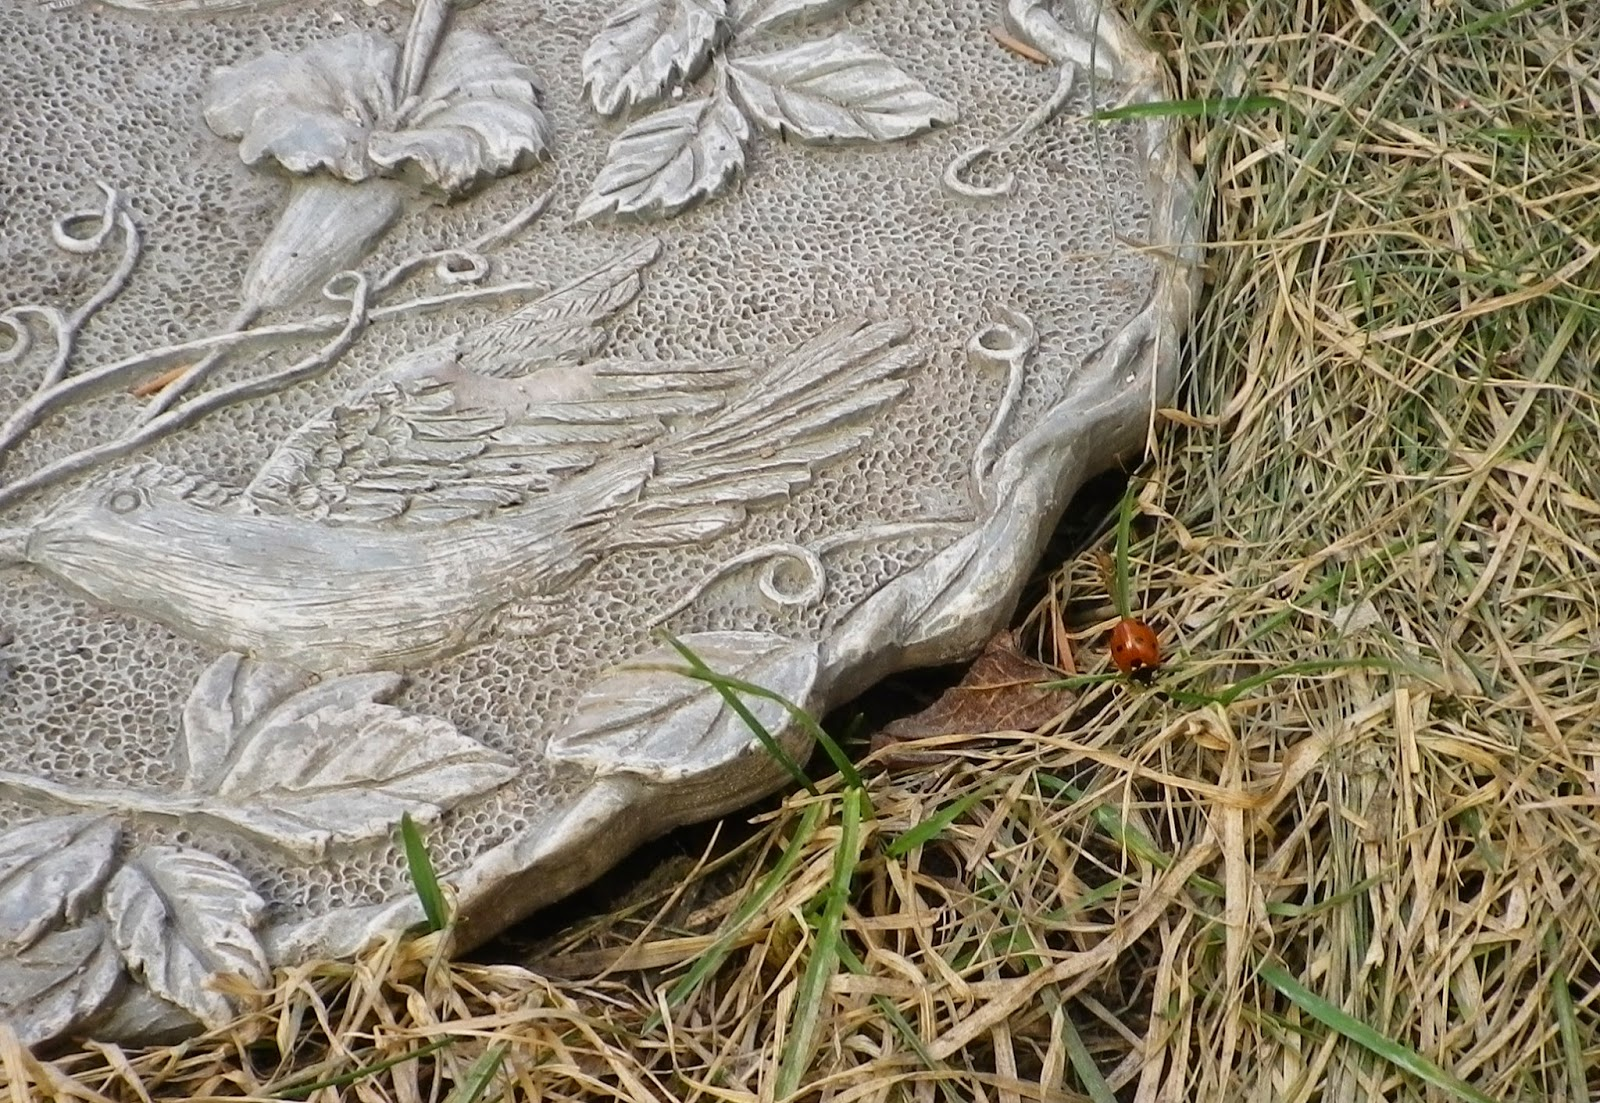 Backyard Ladybug - by feather